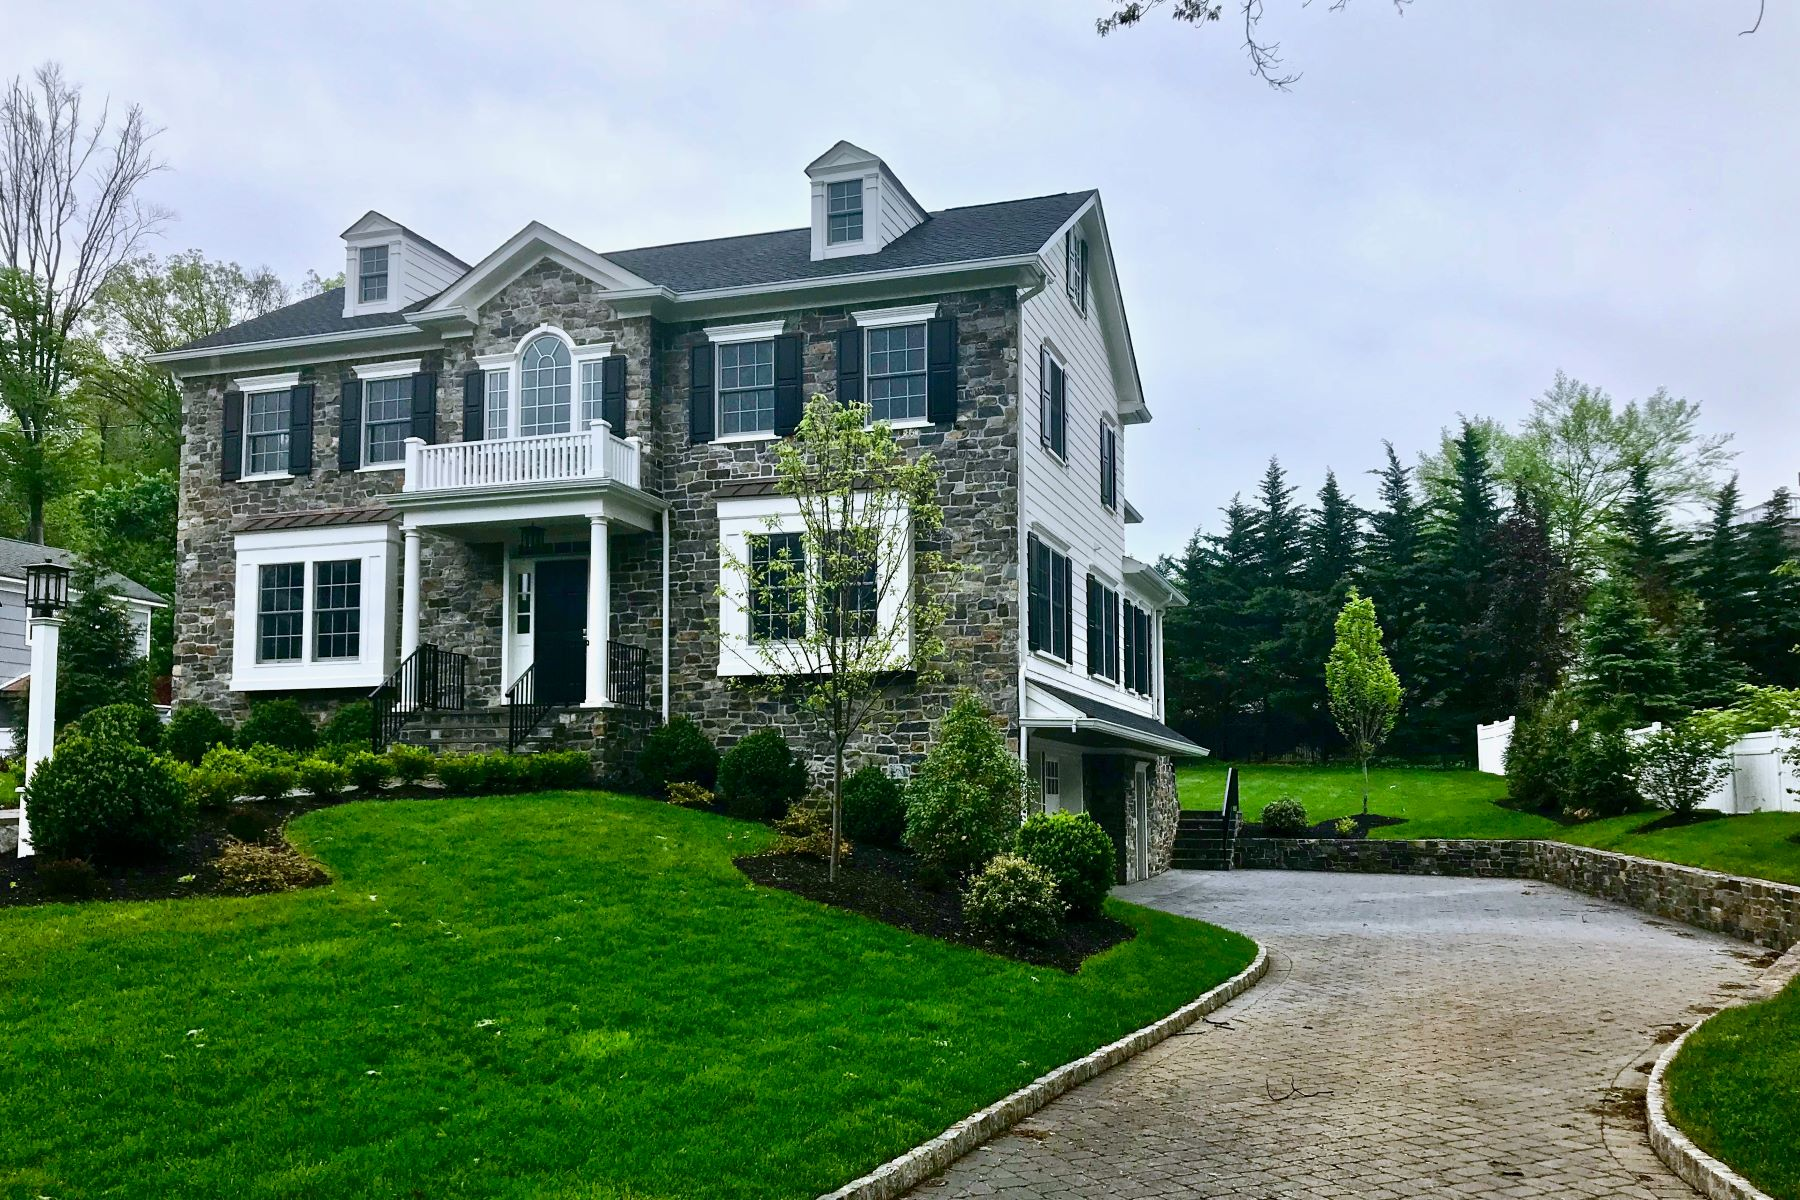 Single Family Home for Sale at Spectacular New Colonial 1 Beverly Road, Madison, New Jersey 07940 United States